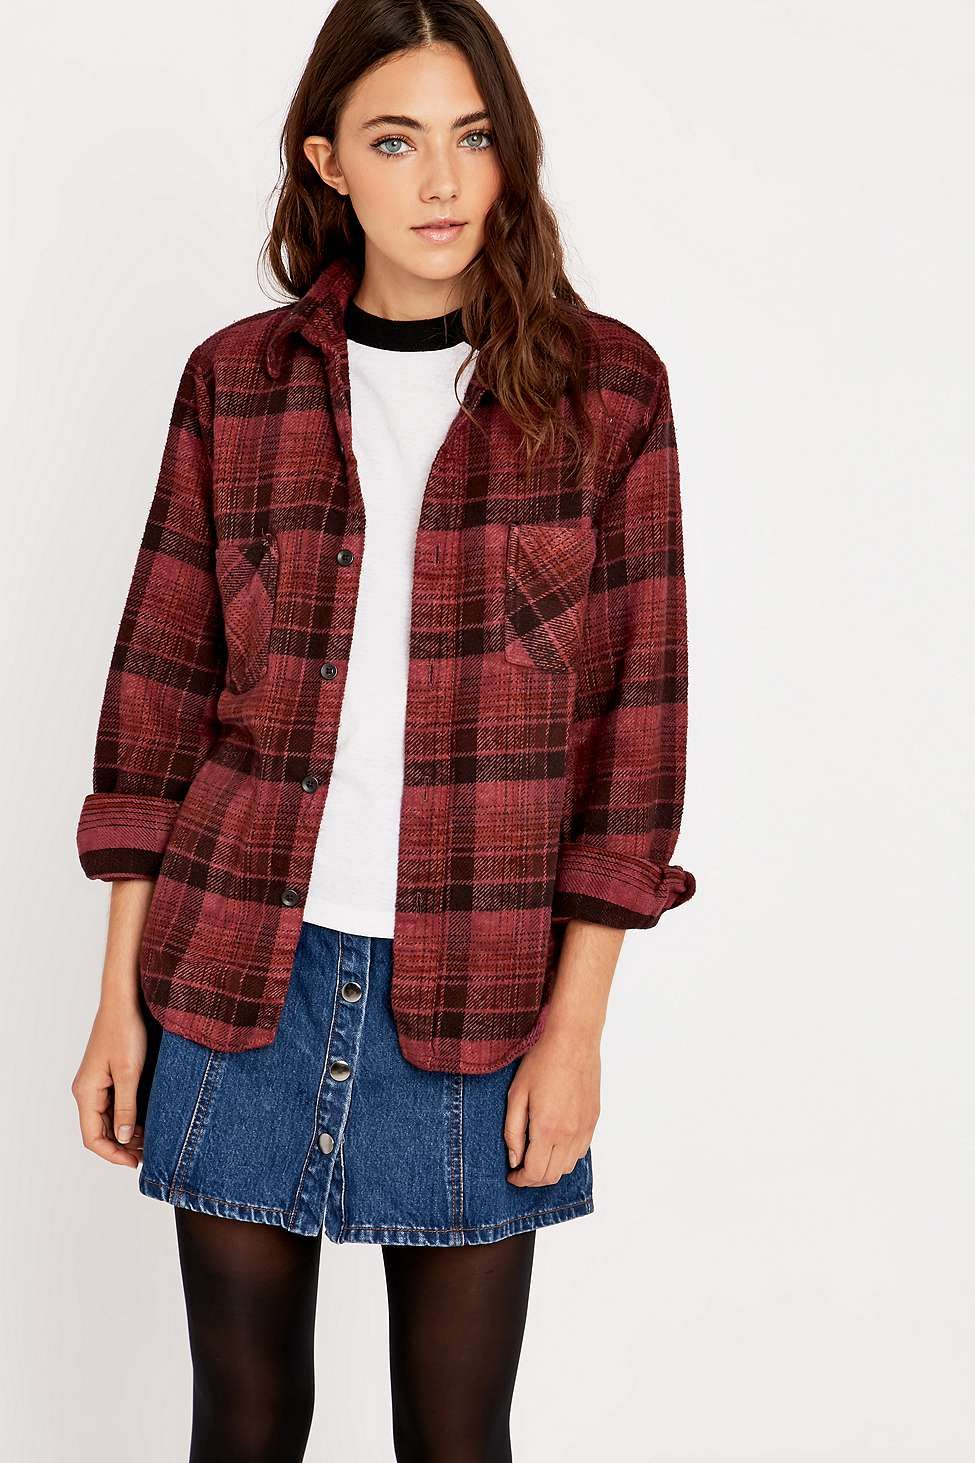 Retro flannel shirts  Urban Renewal Vintage Customised Burgundy Plaid Flannel Shirt